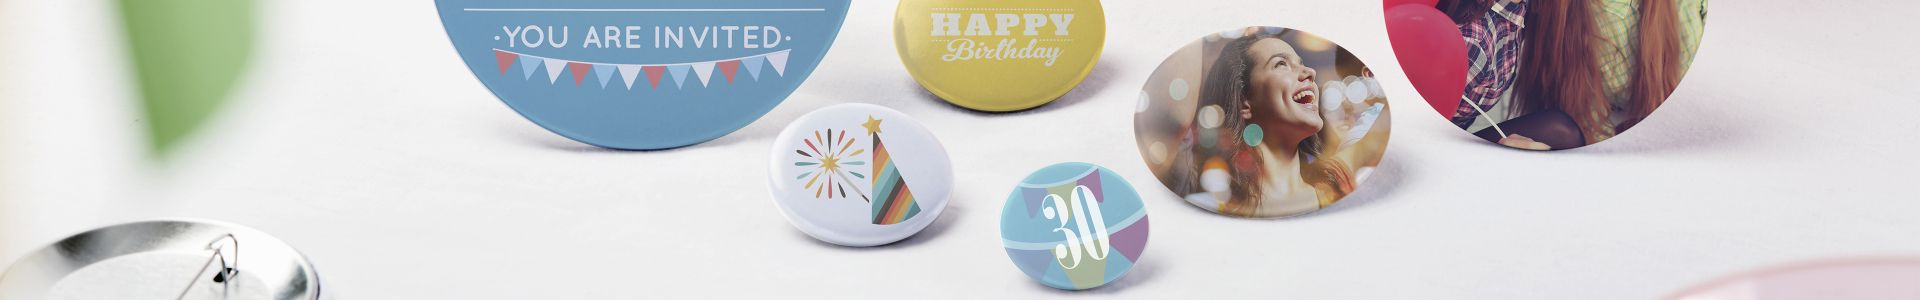 Custom Celebration Buttons | Camaloon